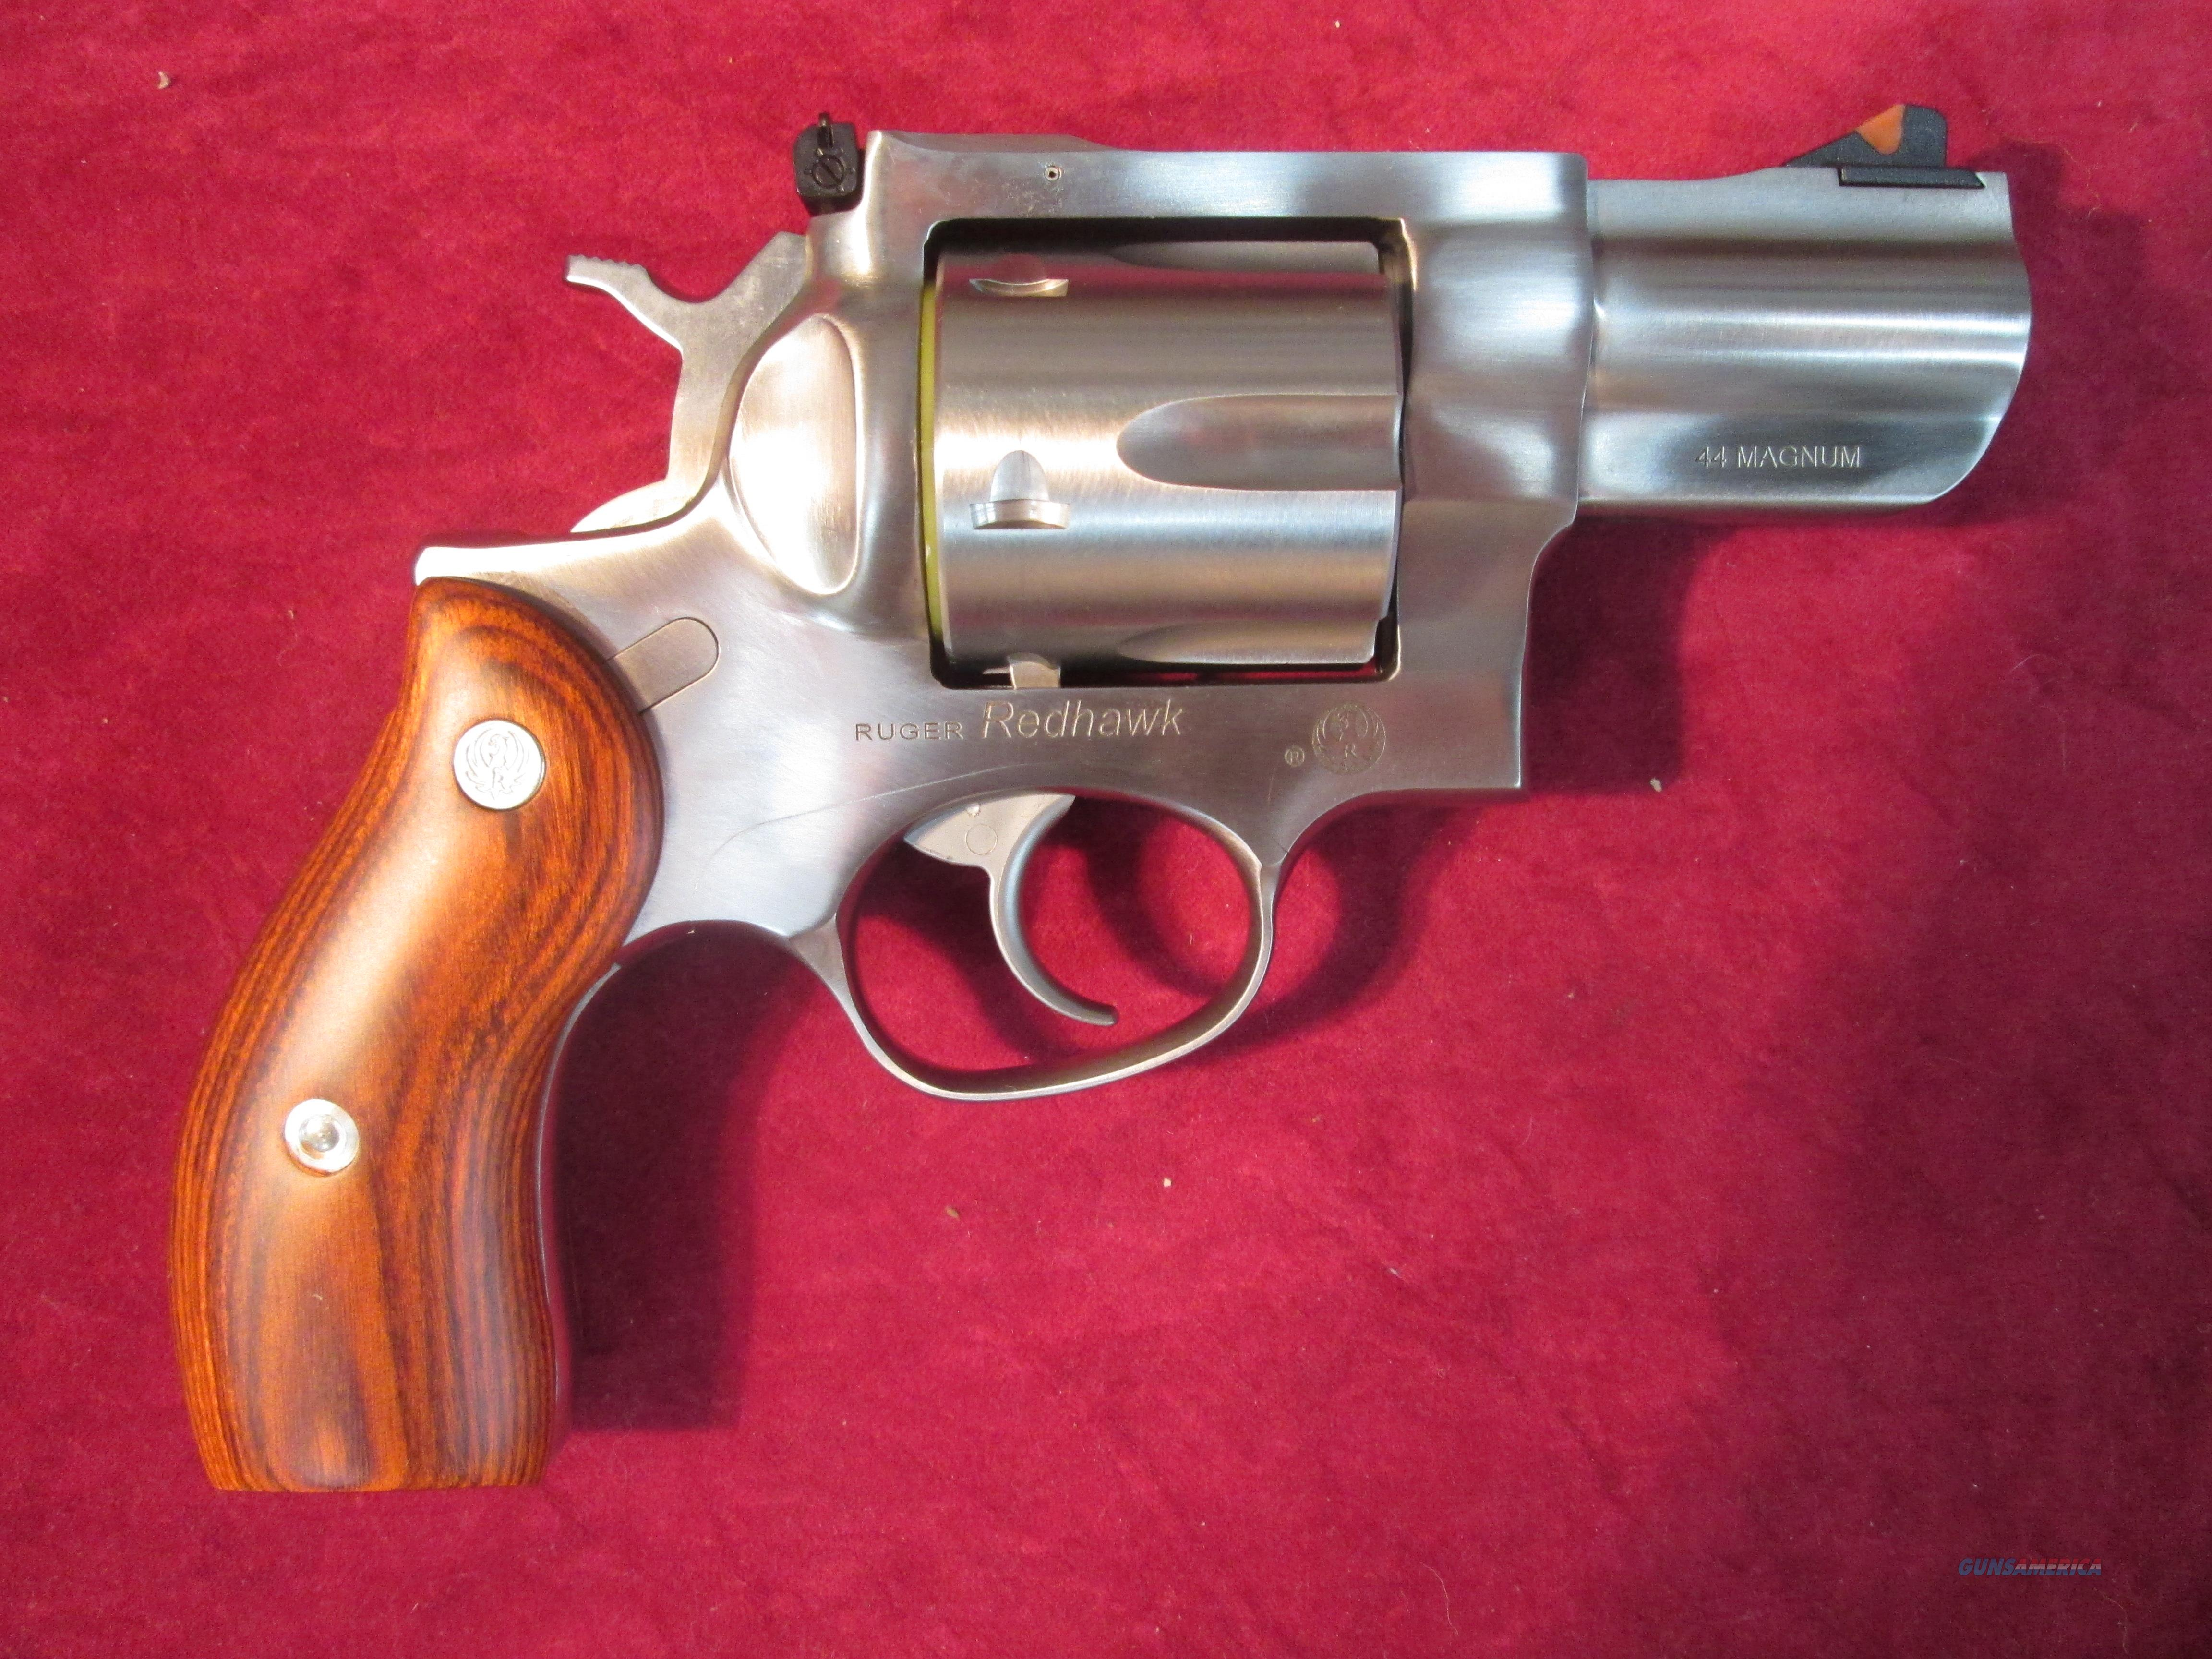 RUGER STAINLESS REDHAWK KODIAK BACKPACKER TALO EDITION 44MAG NEW (05028)   Guns > Pistols > Ruger Double Action Revolver > Redhawk Type